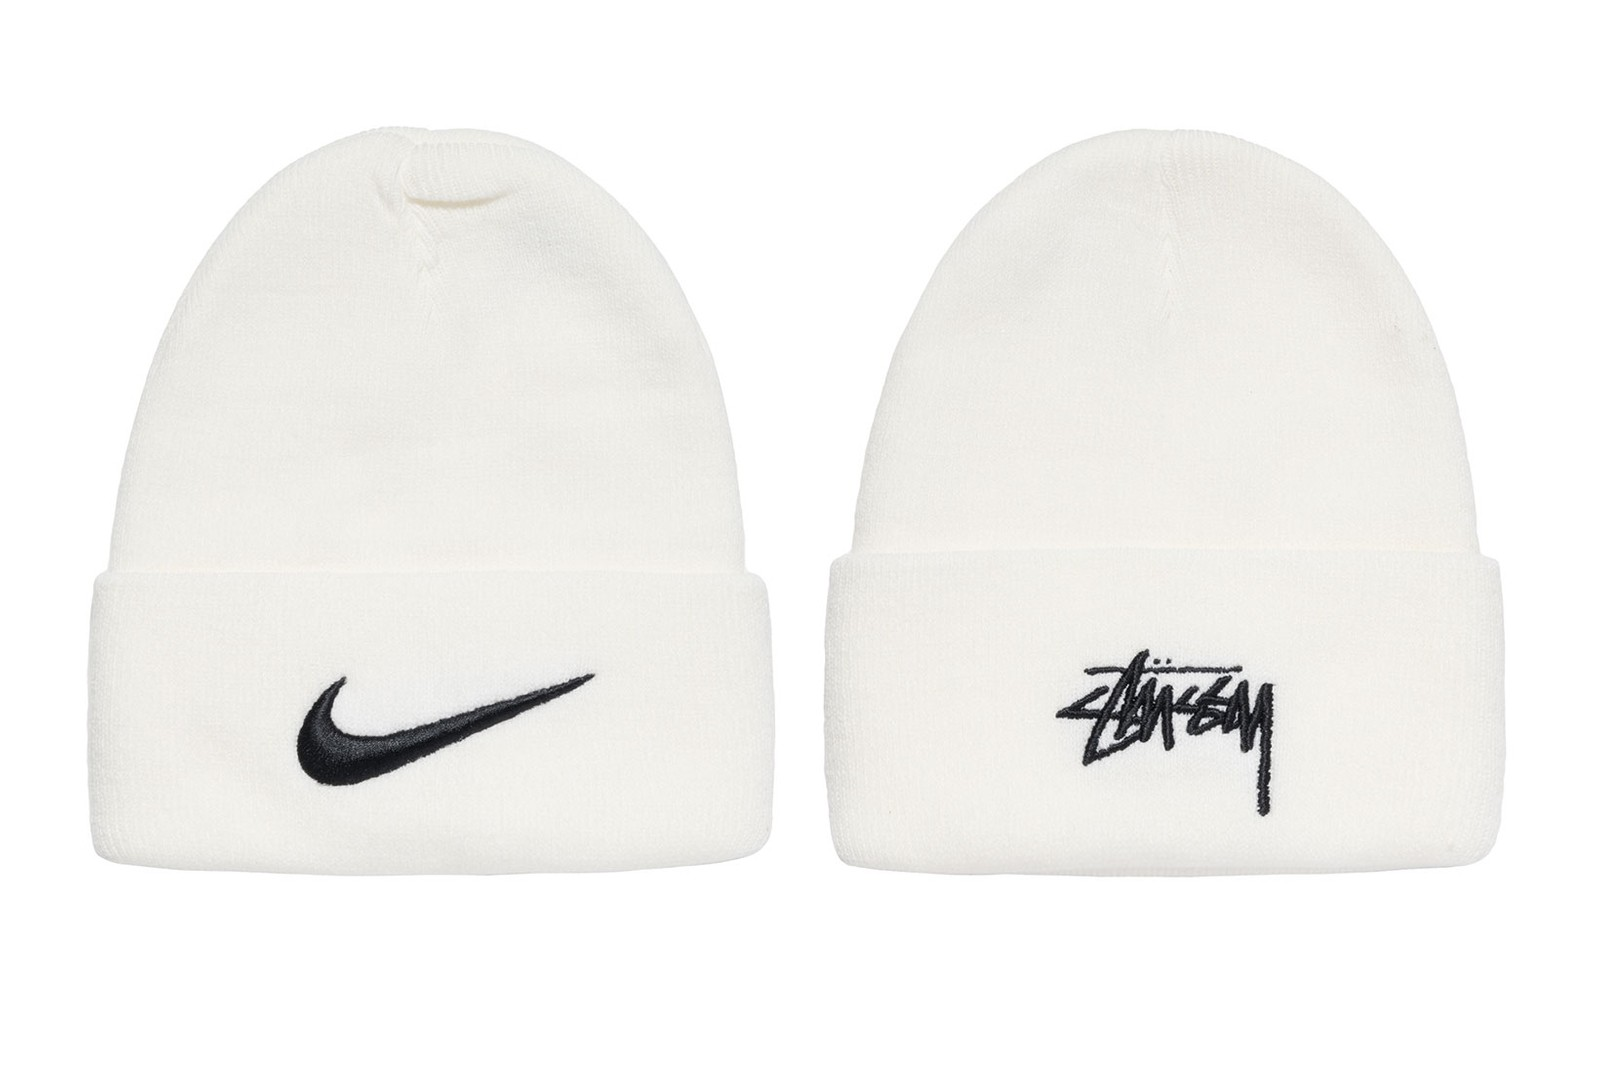 stussy nike air force 1 af1 apparel clothing collaboration sweatshirts slides bucket hats release